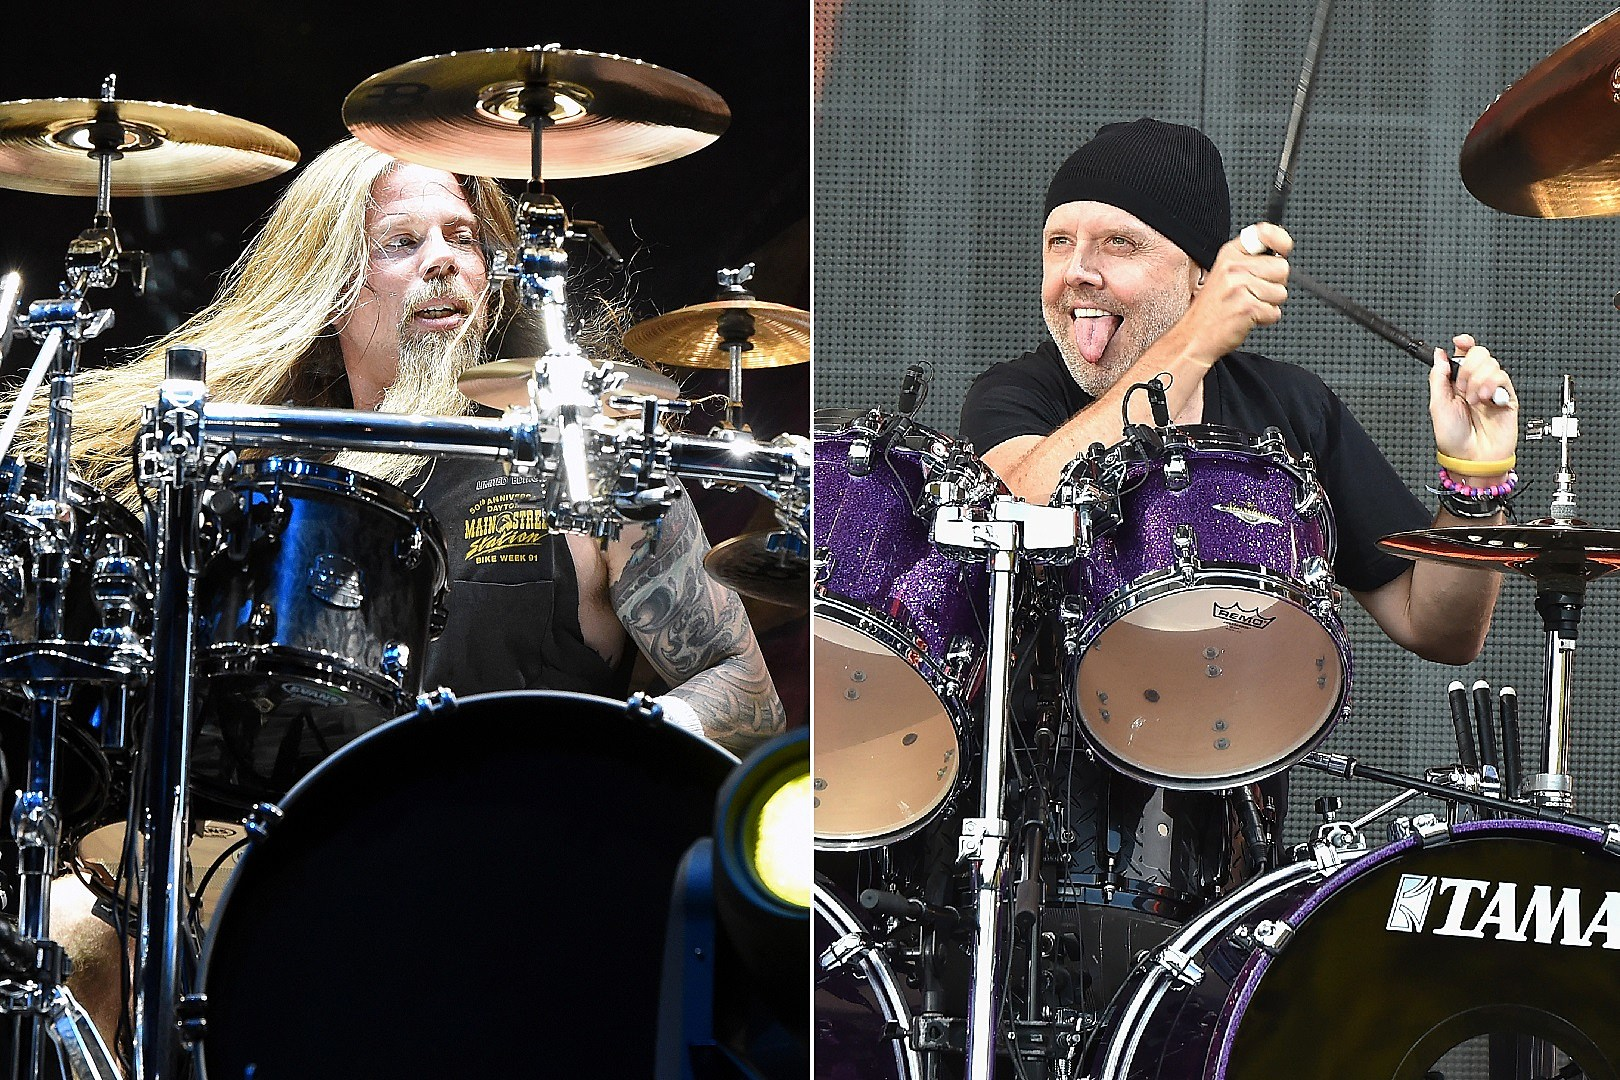 Chris Adler Asked Lars Ulrich for Advice on Working With Dave Mustaine